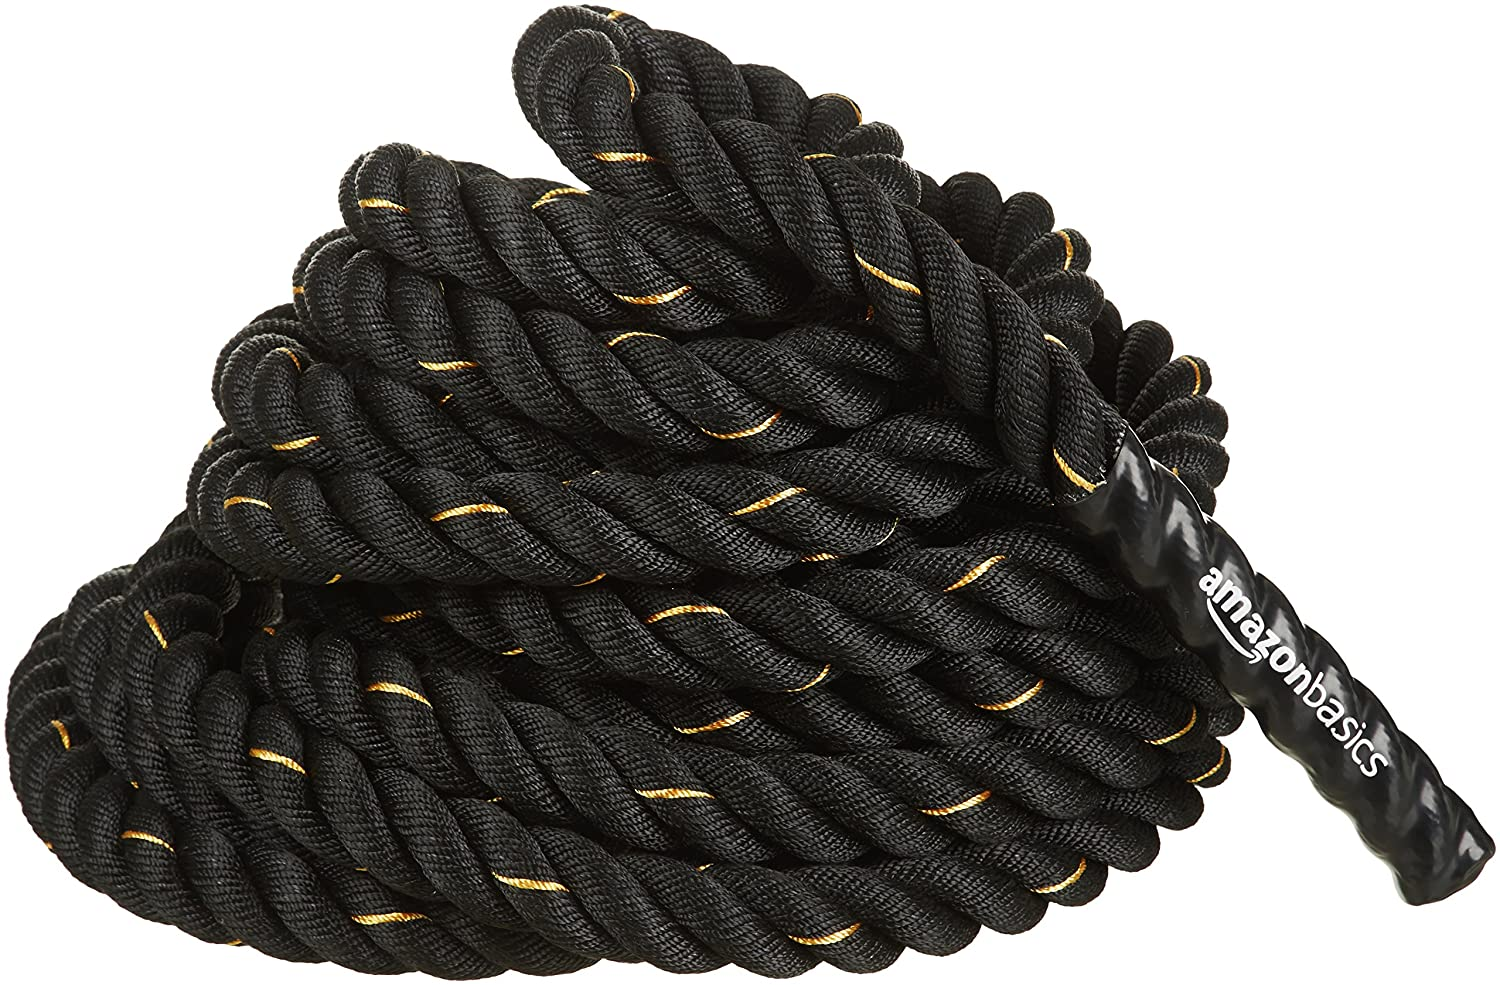 AmazonBasics Battle Exercise Training Rope, 1.5/2in Diameter, 30/40/50ft Length